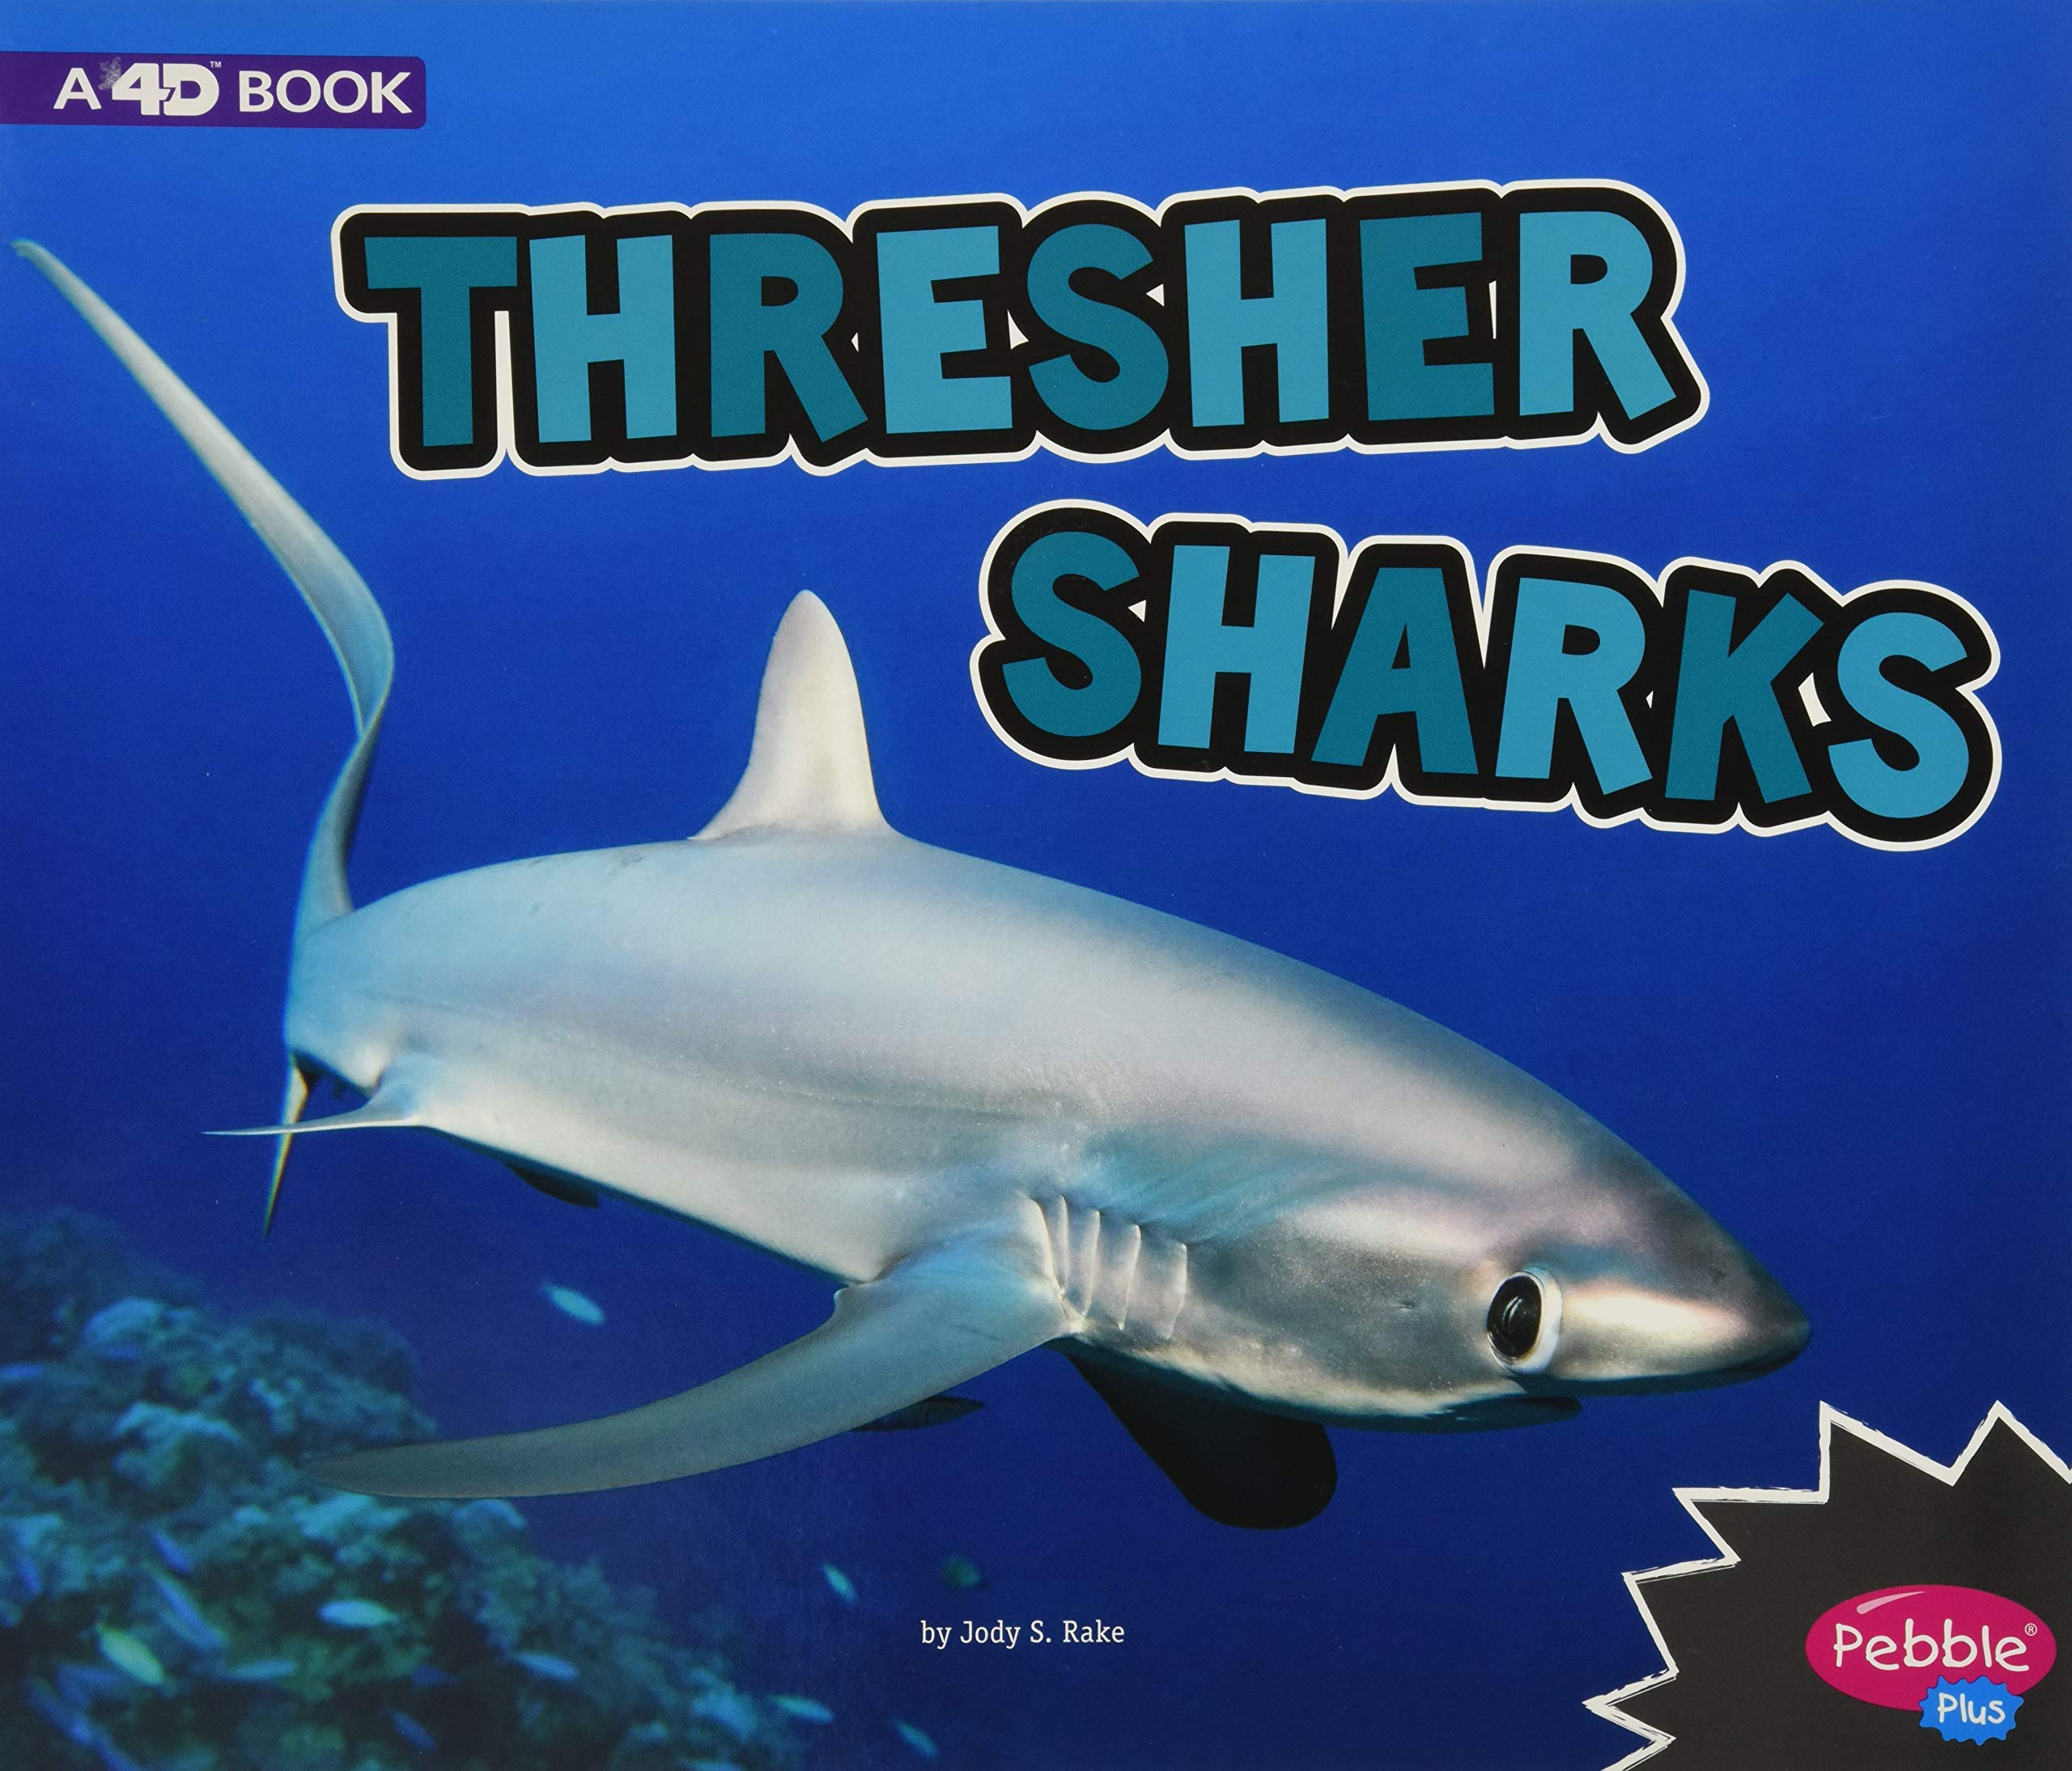 Thresher Sharks: A 4D Book (All About Sharks) PDF